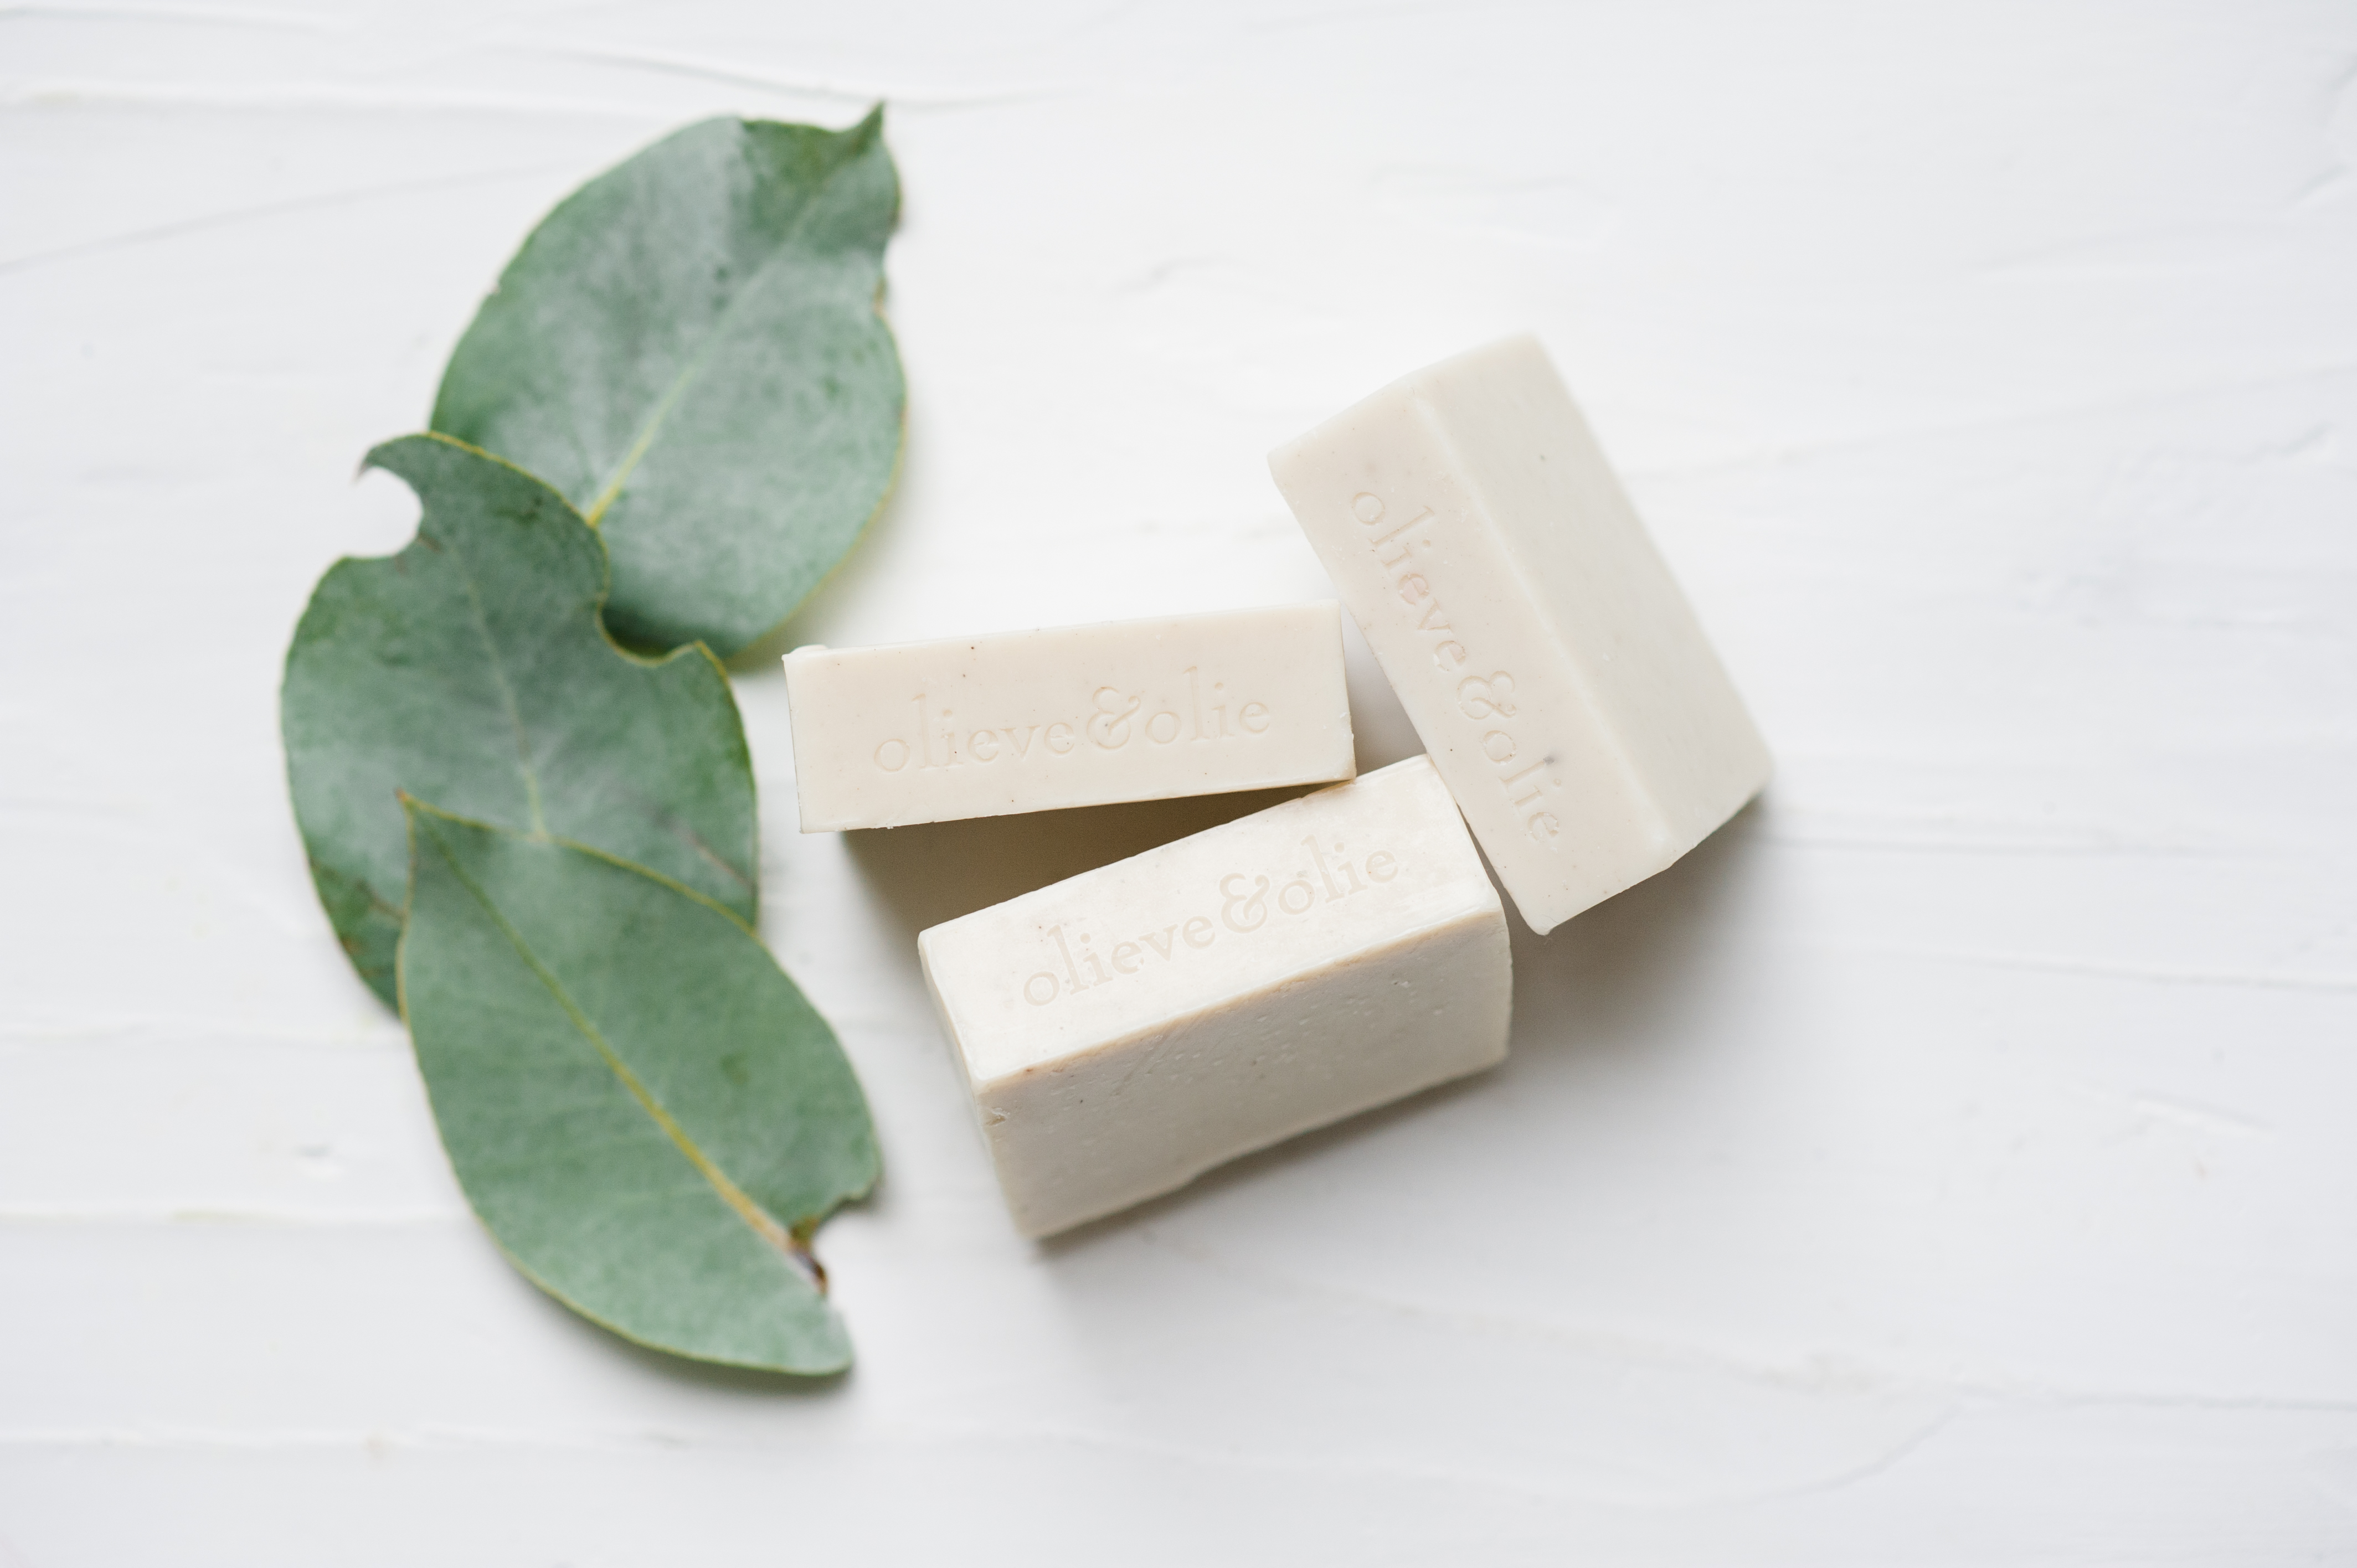 Olive oil and goats milk bar soap - pack of 3